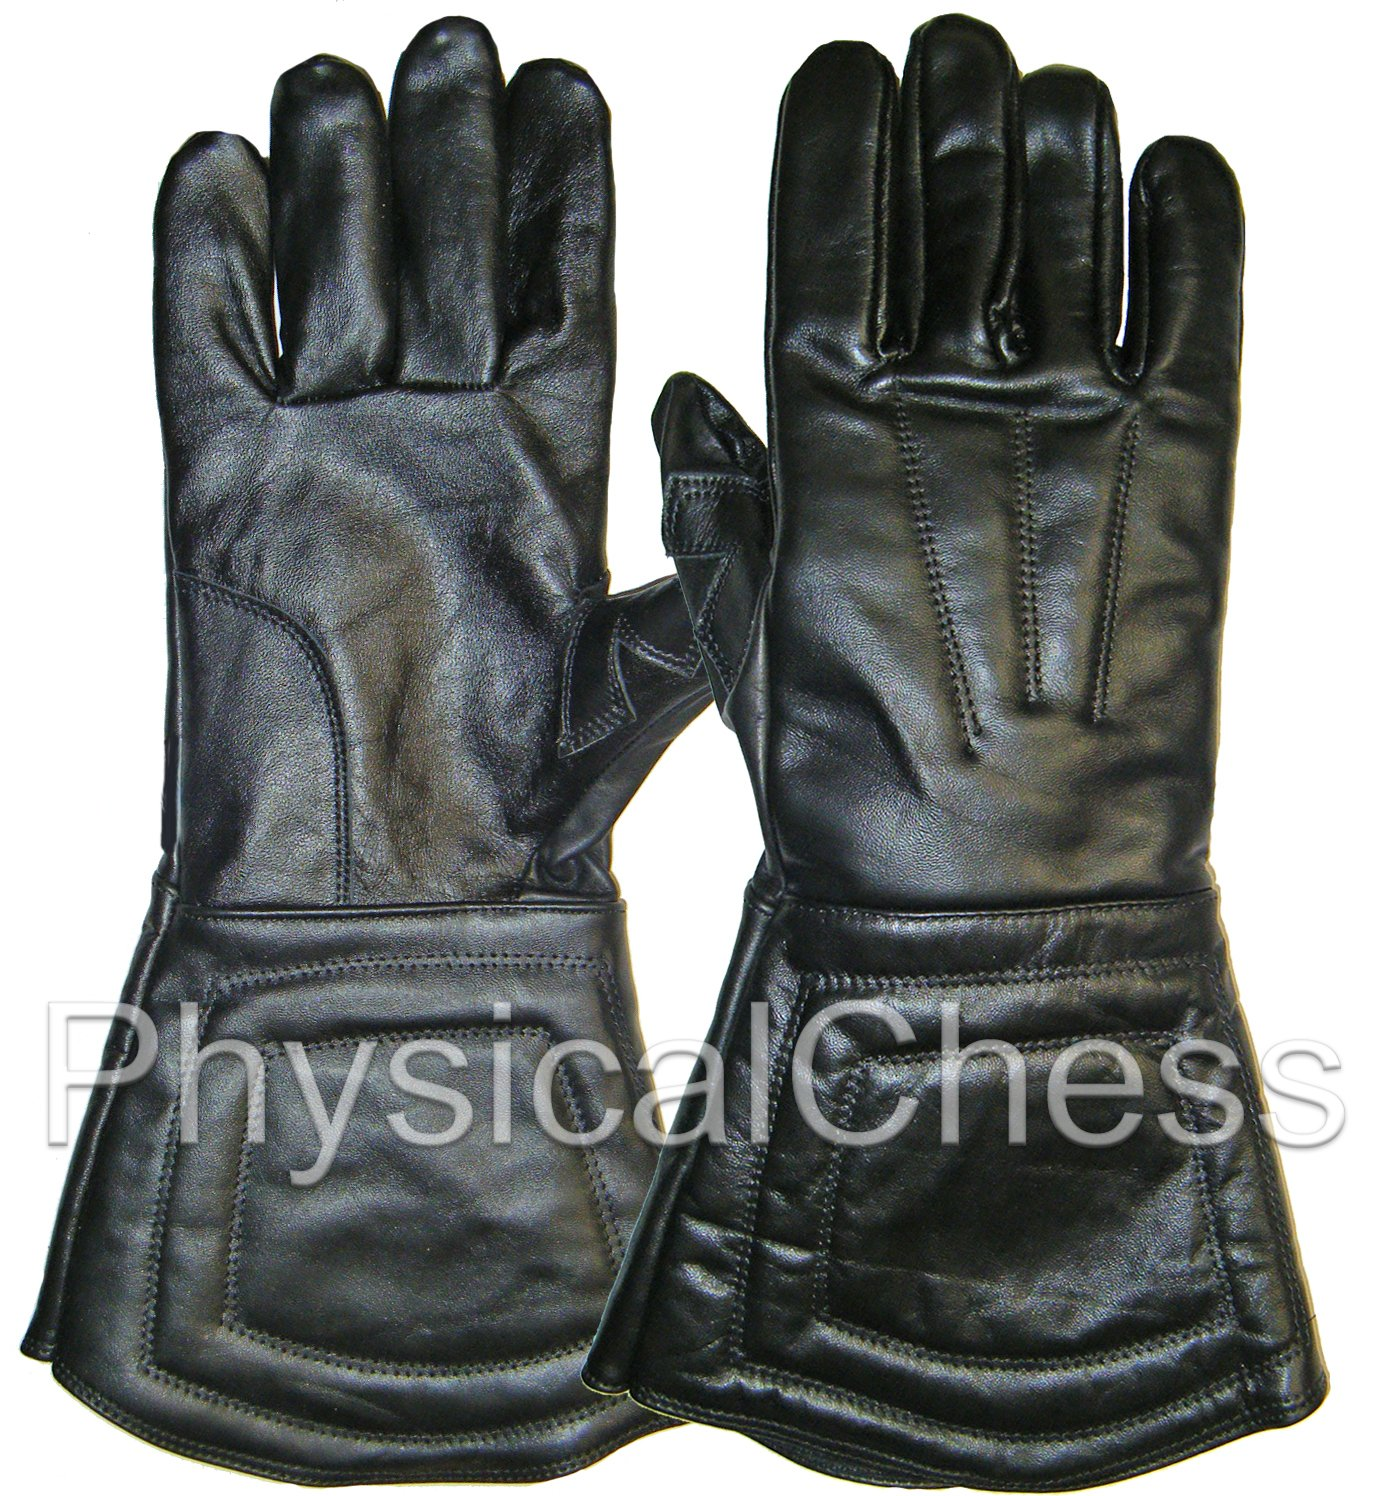 Black Leather Fencing SCA Medieval Halloween Costume Gloves, Pair chess